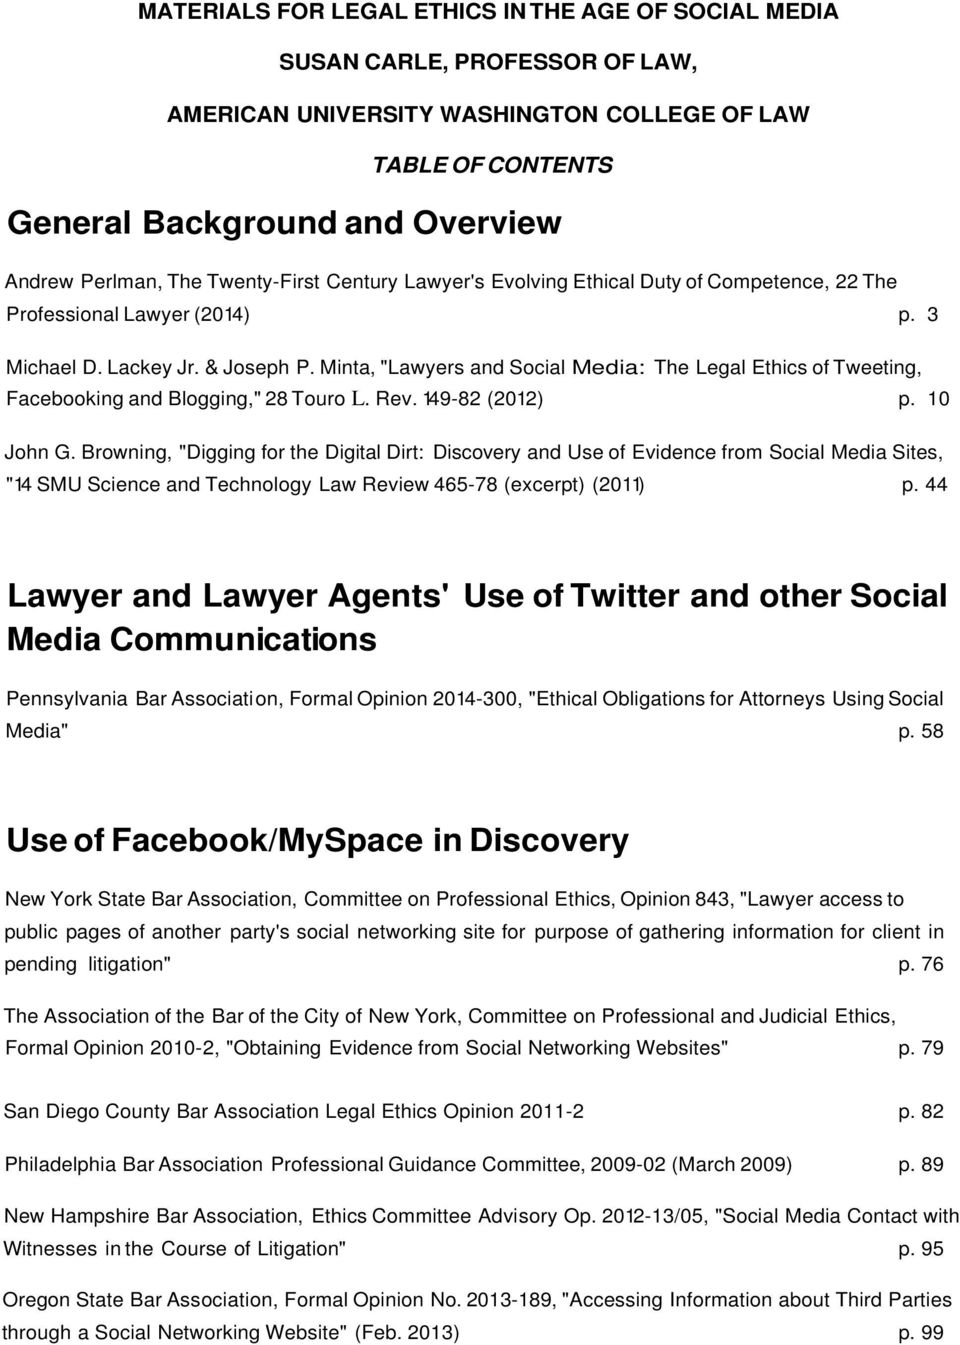 "Minta, ""Lawyers and Social Media: The Legal Ethics of Tweeting, Facebooking and Blogging,"" 28 Touro L. Rev. 149-82 (2012) p. 10 John G."